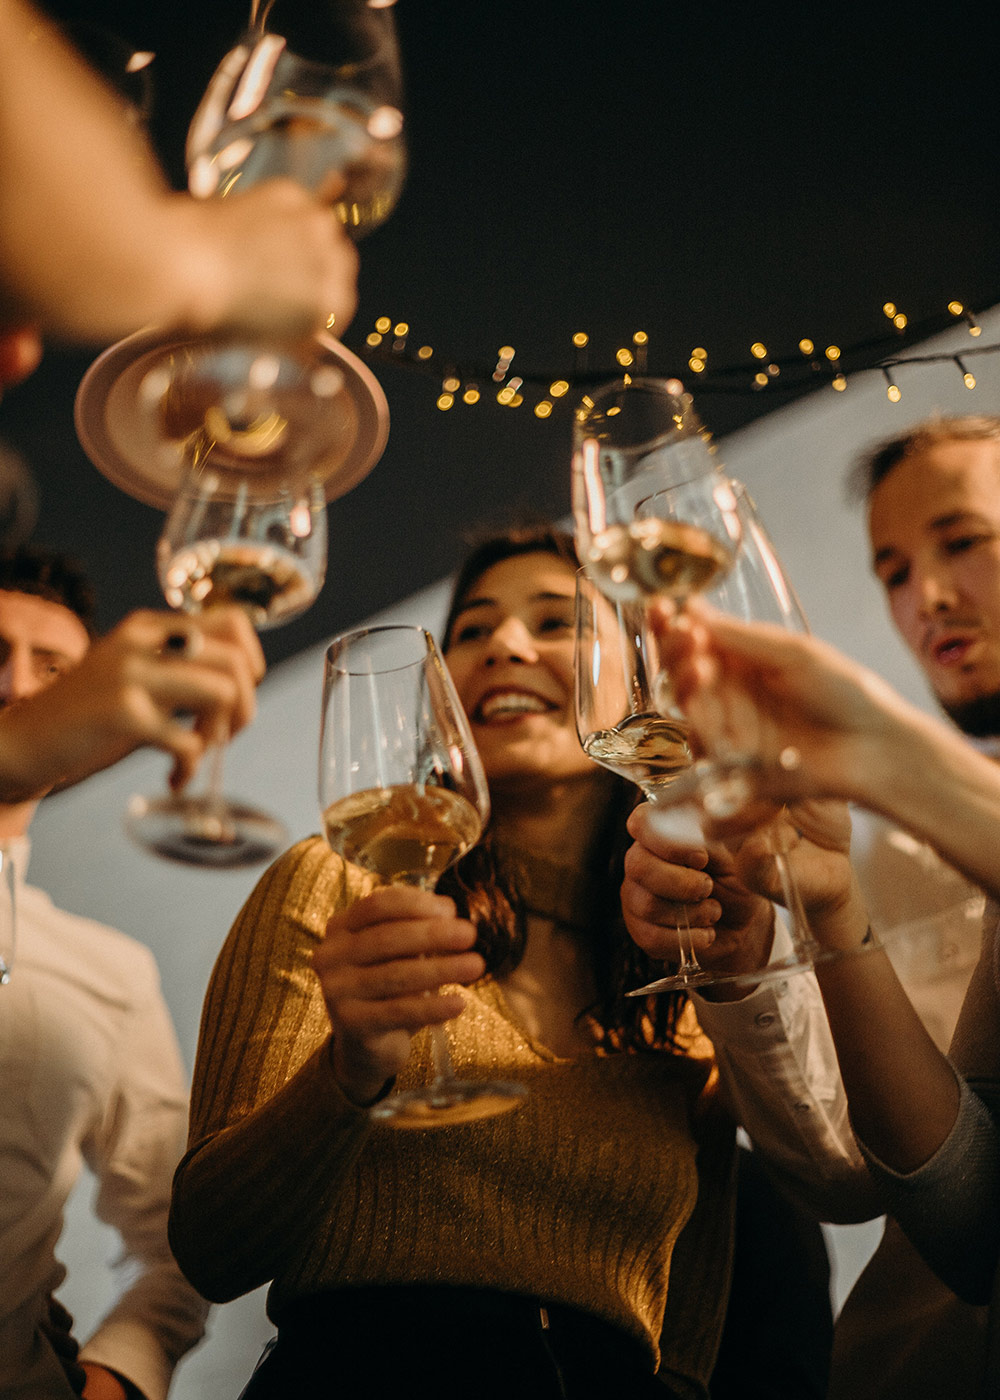 Couples raising their glasses for a toast.